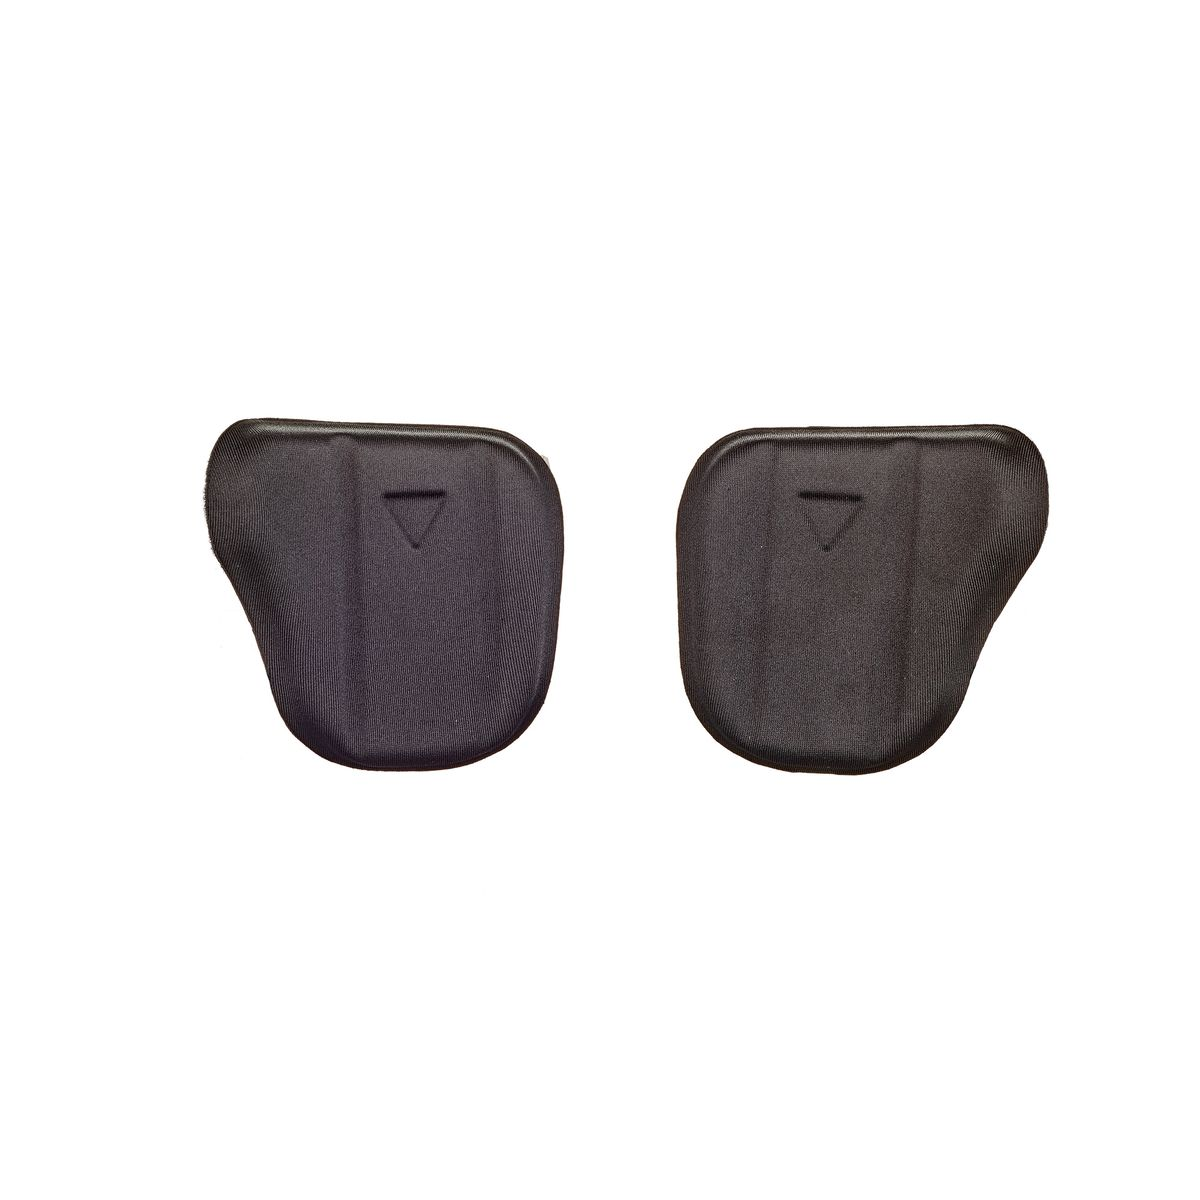 F-19 16 mm replacement pads